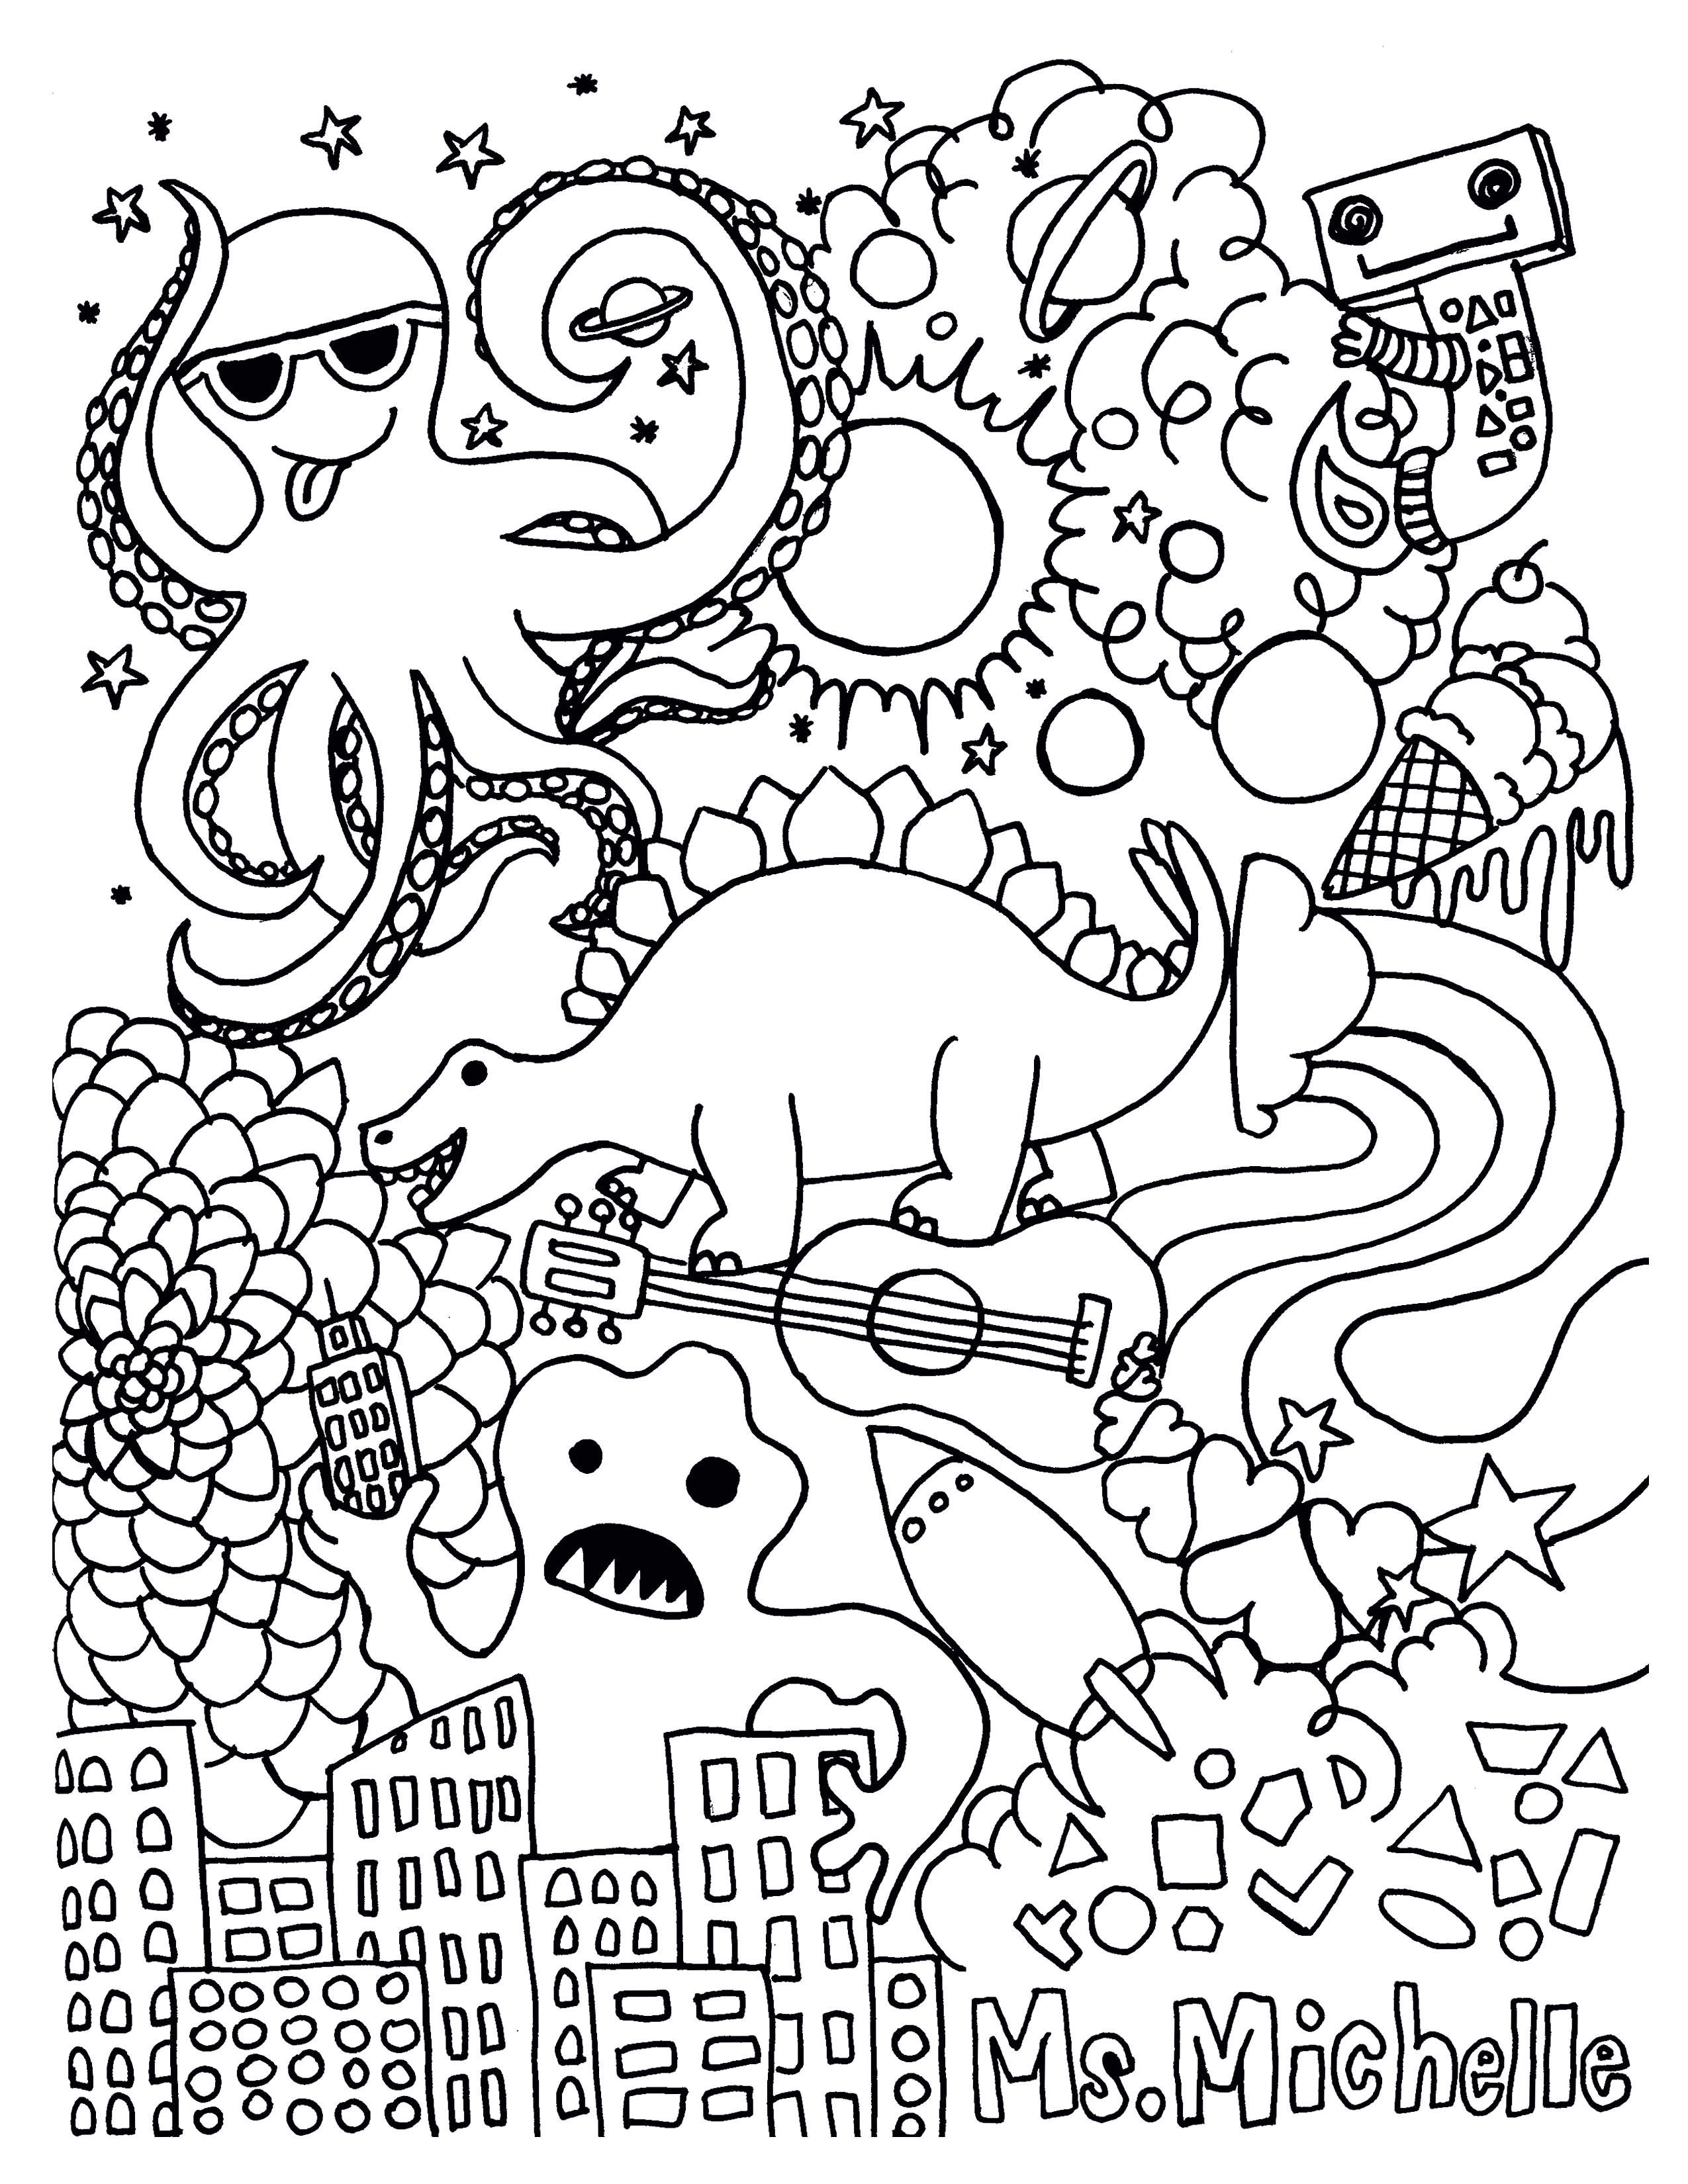 Puzzle Coloring Pages  Collection 10p - To print for your project